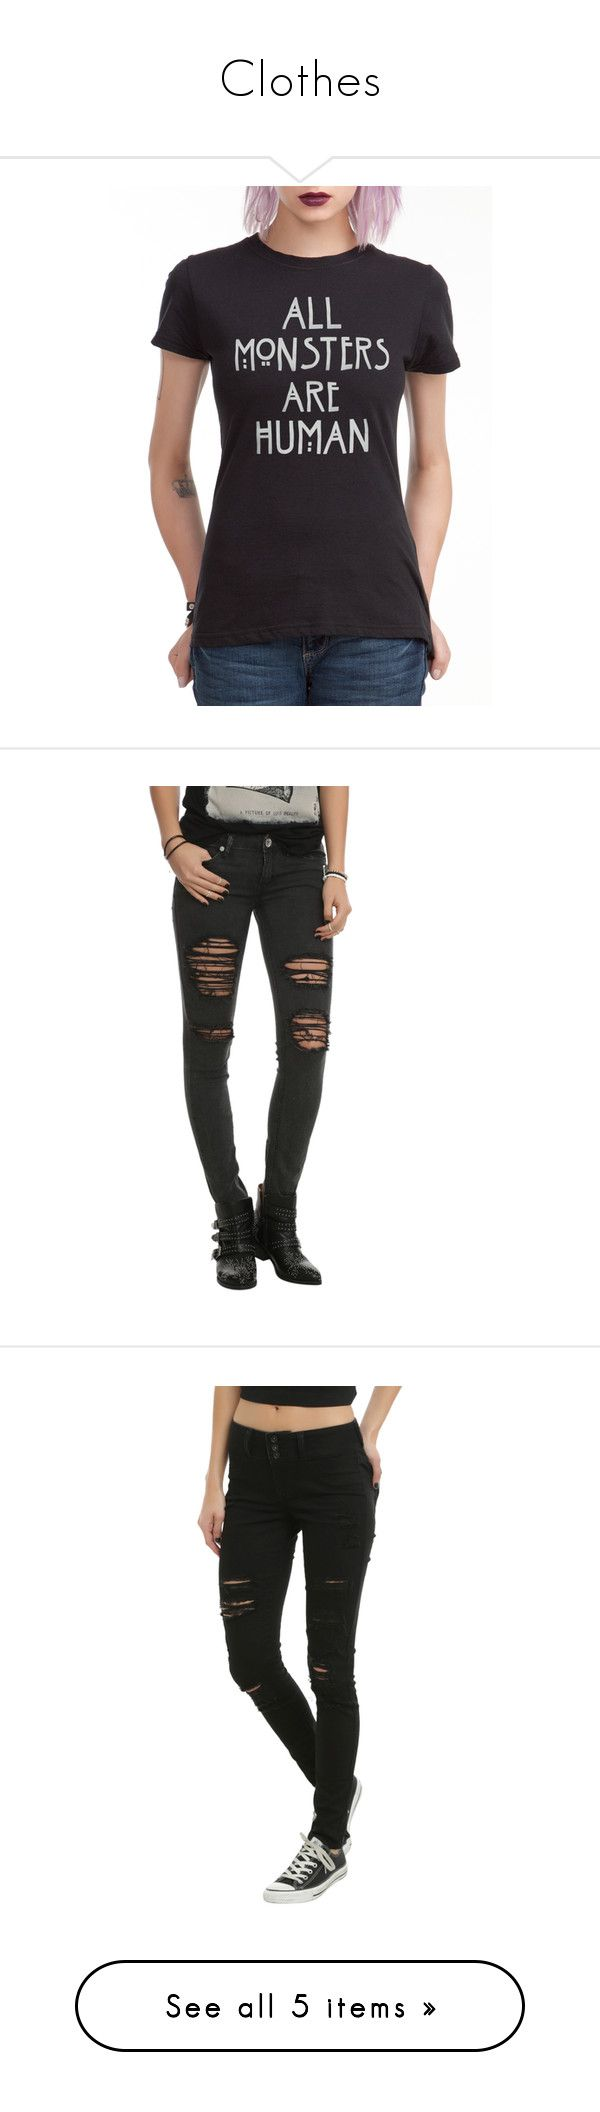 """""""Clothes"""" by mairethekiller ❤ liked on Polyvore featuring tops, t-shirts, shirts, american horror story, hot topic, black, tee-shirt, american t shirt, t shirt and americana t shirts"""